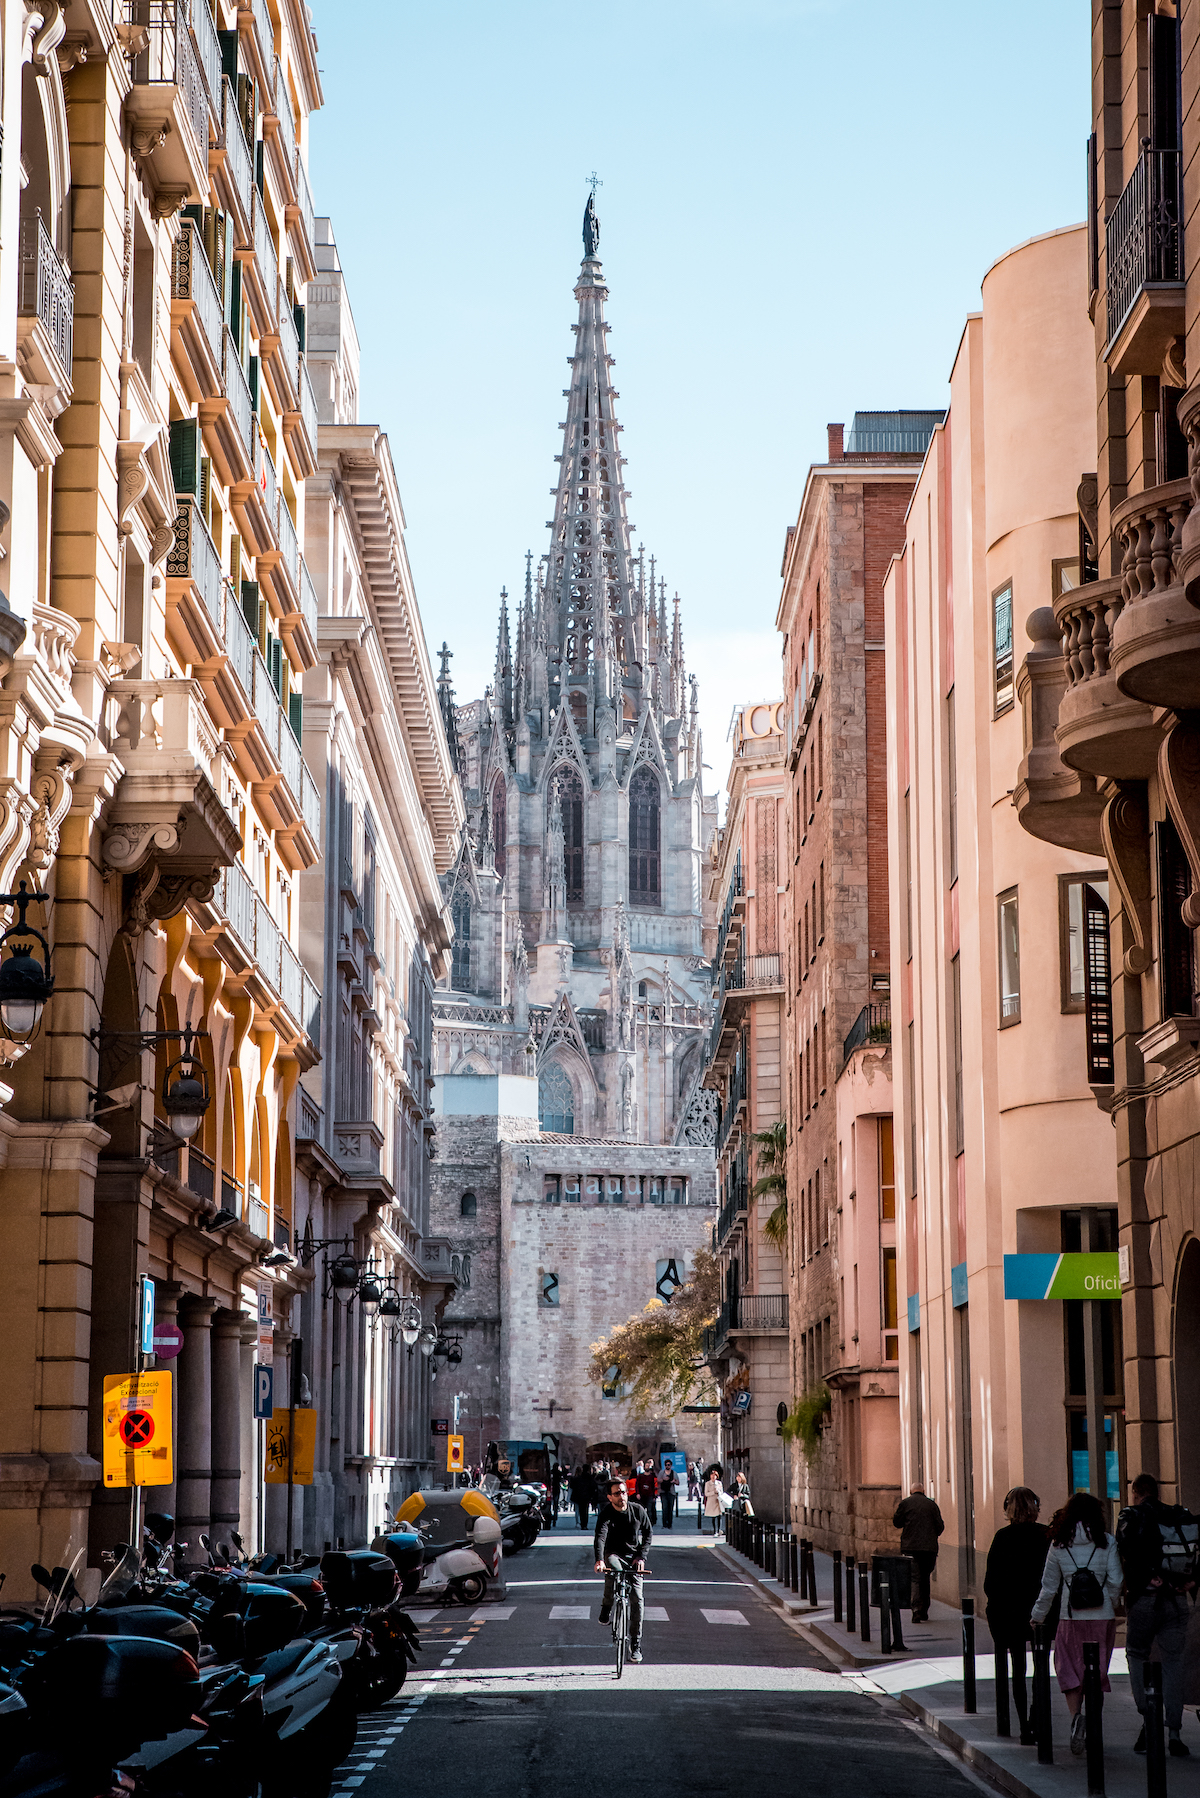 Barcelona Cathedral by Ben Holbrook